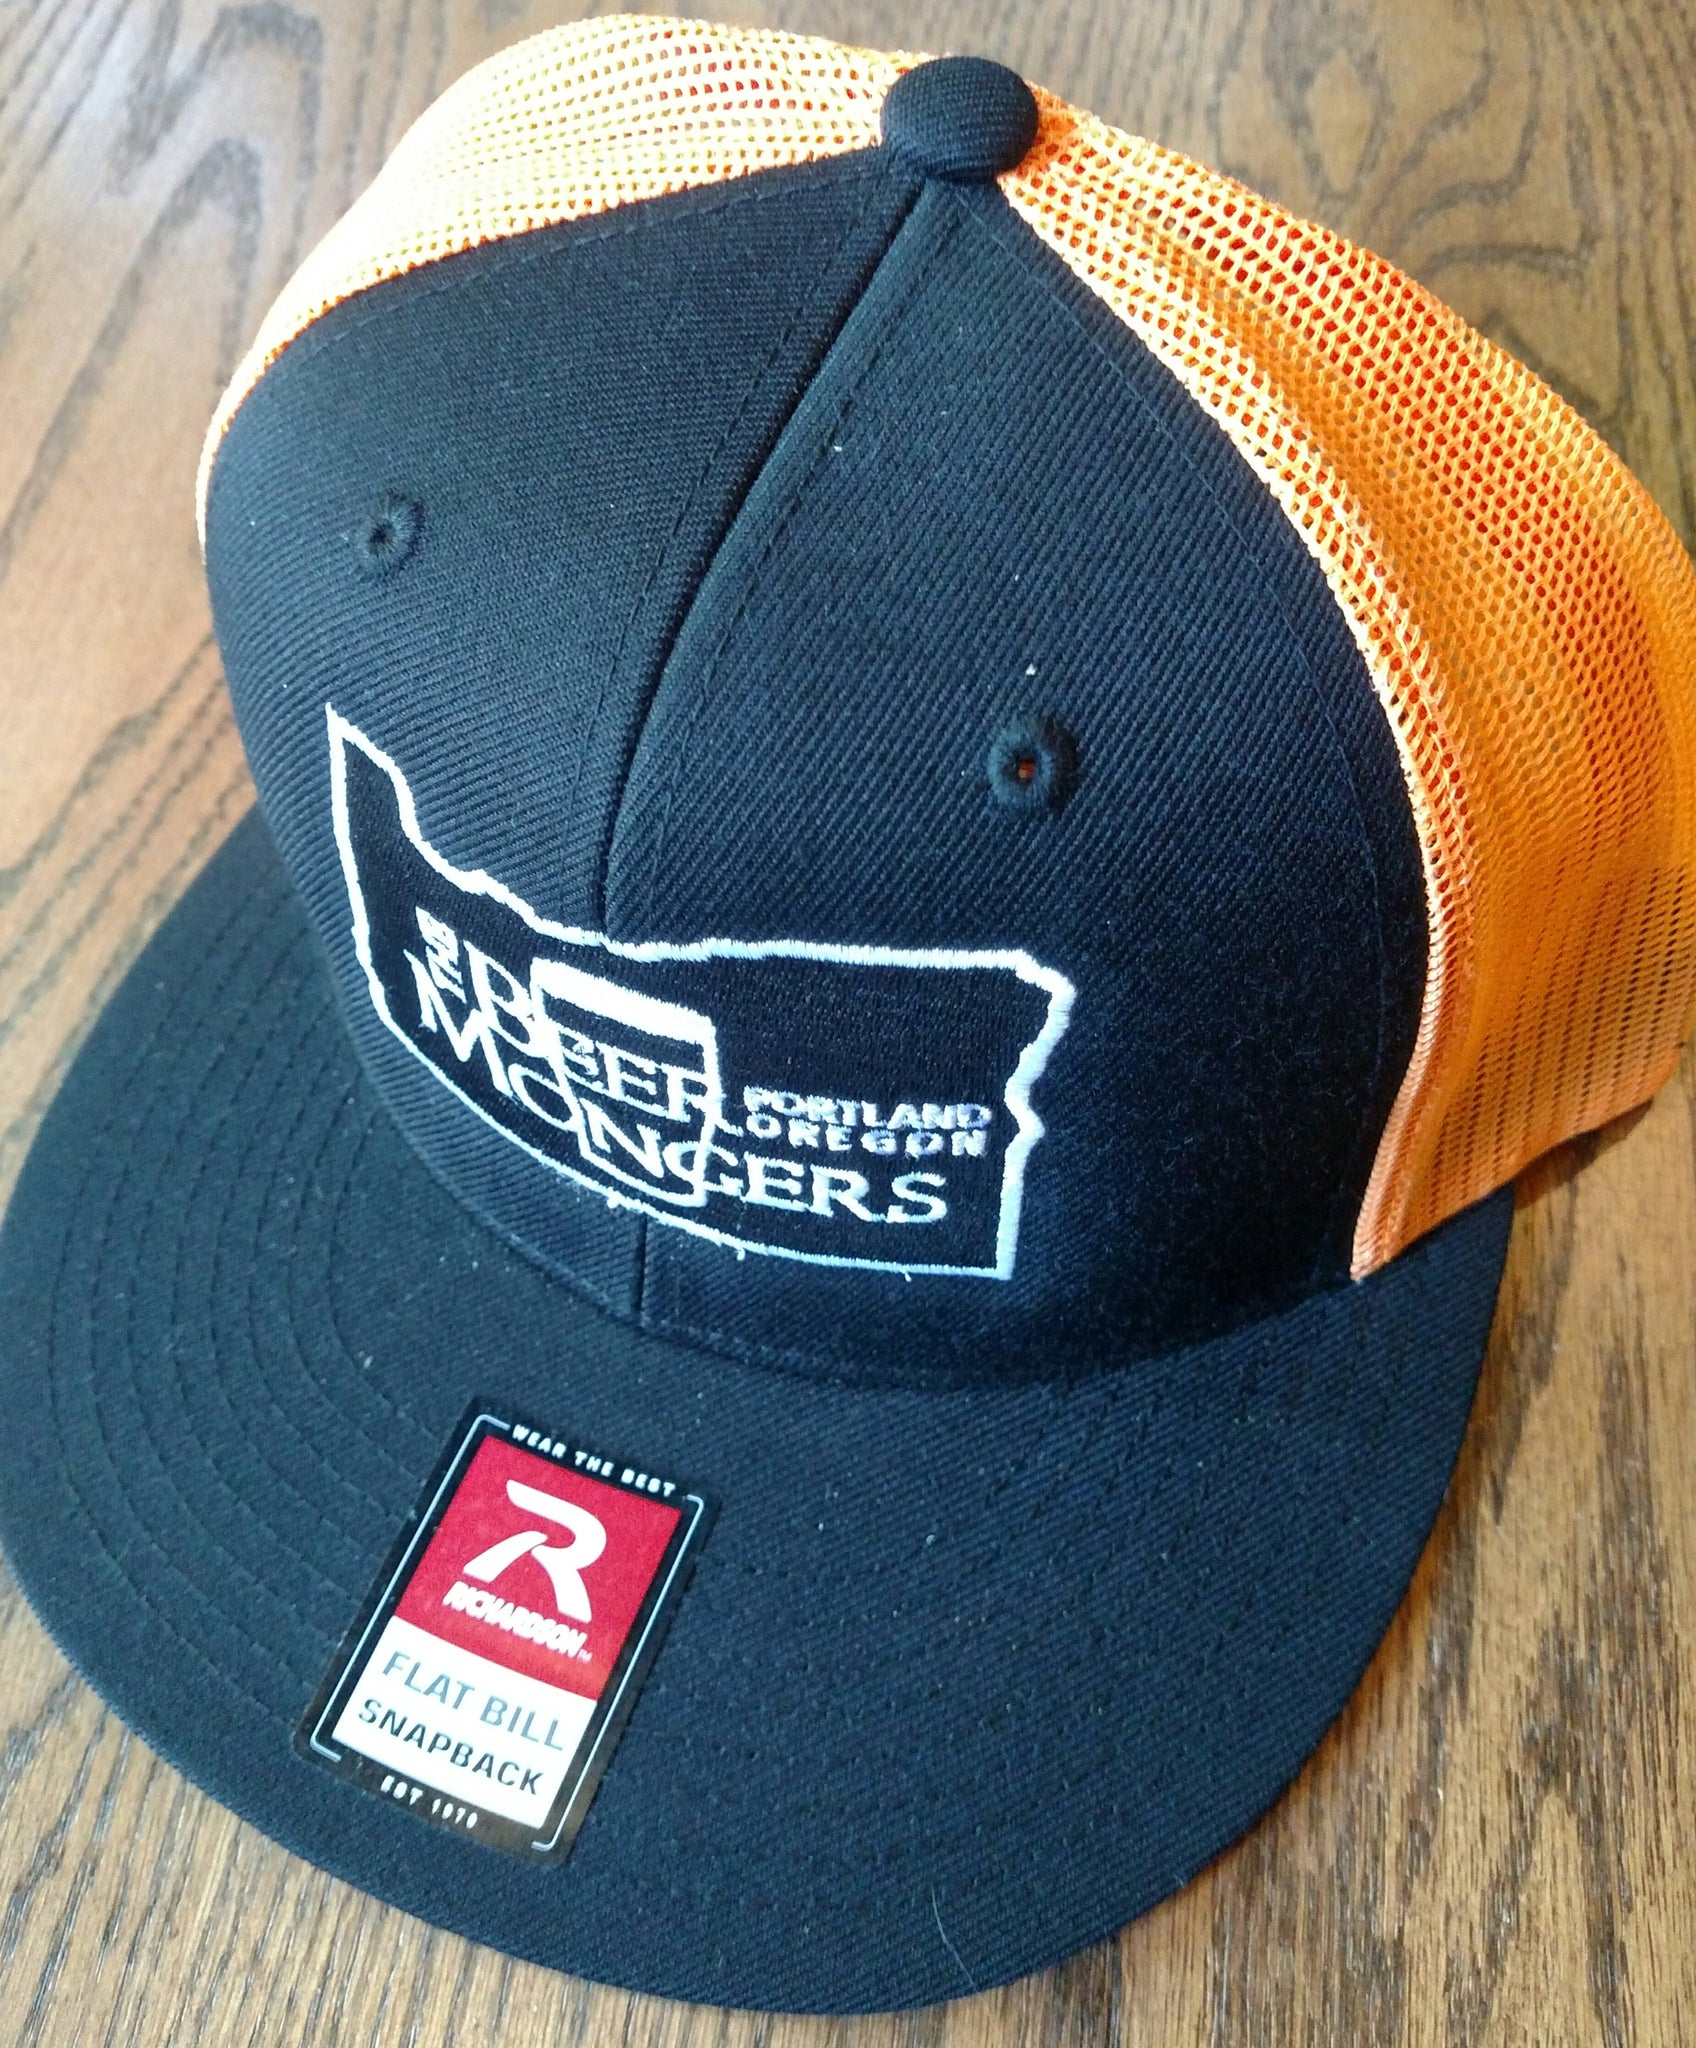 c7bb4bccac167 ... The Beer Mongers Flatbill Trucker Hat (Multiple Colors) ...